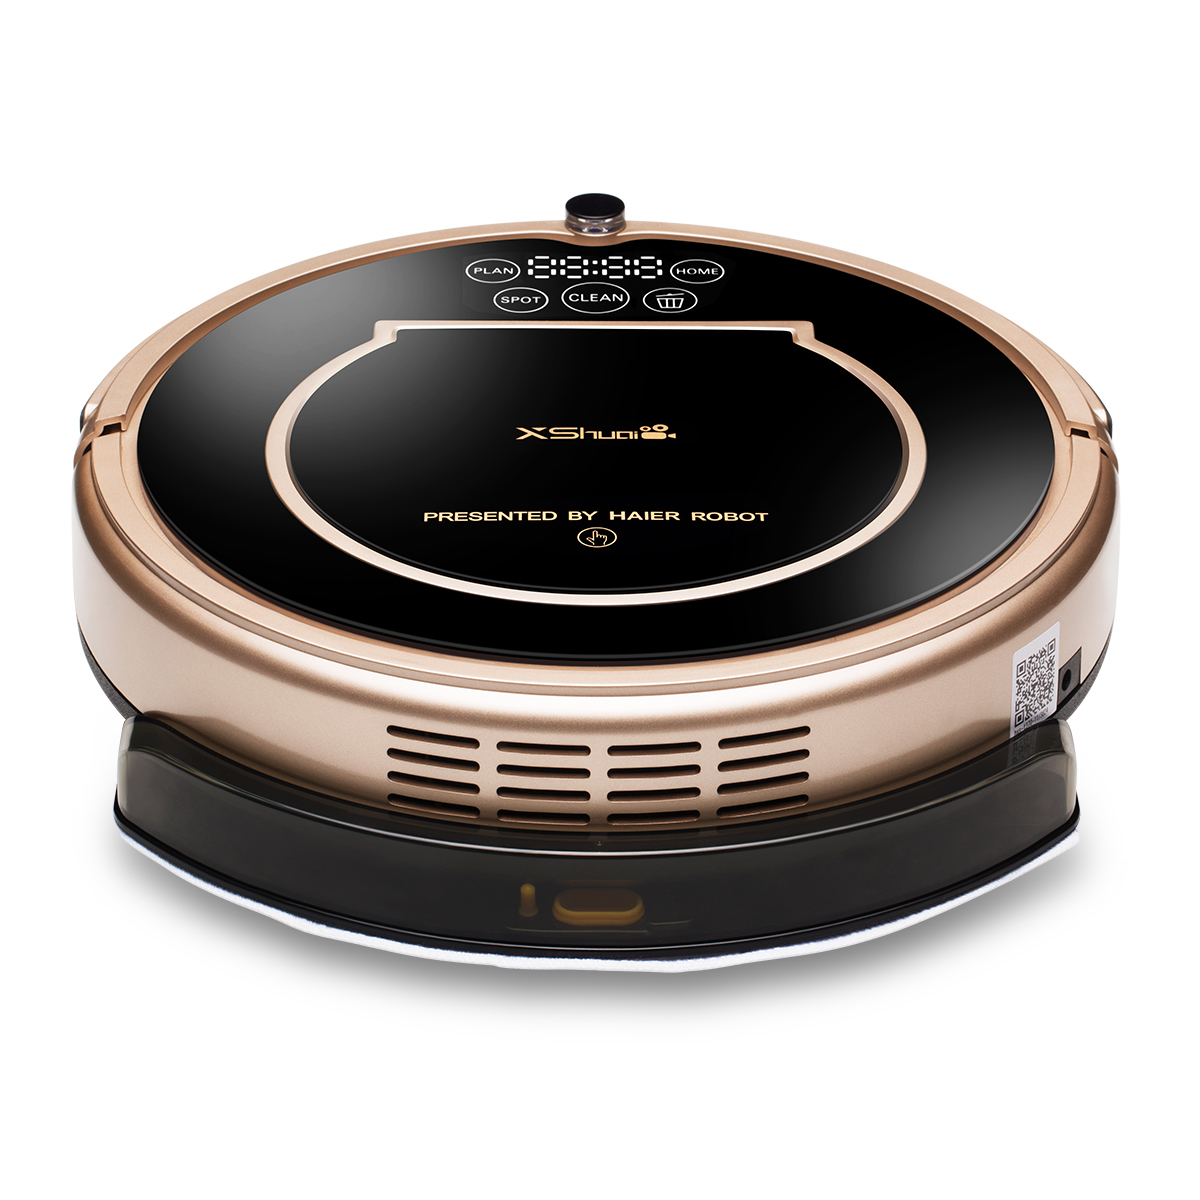 Haier XShuai Robotic Vacuum Cleaner, Alexa Voice Control Robot Smart Cleaning Mopping Vacuum Microfiber Dust Cleaner Automatic Sweeping Machine